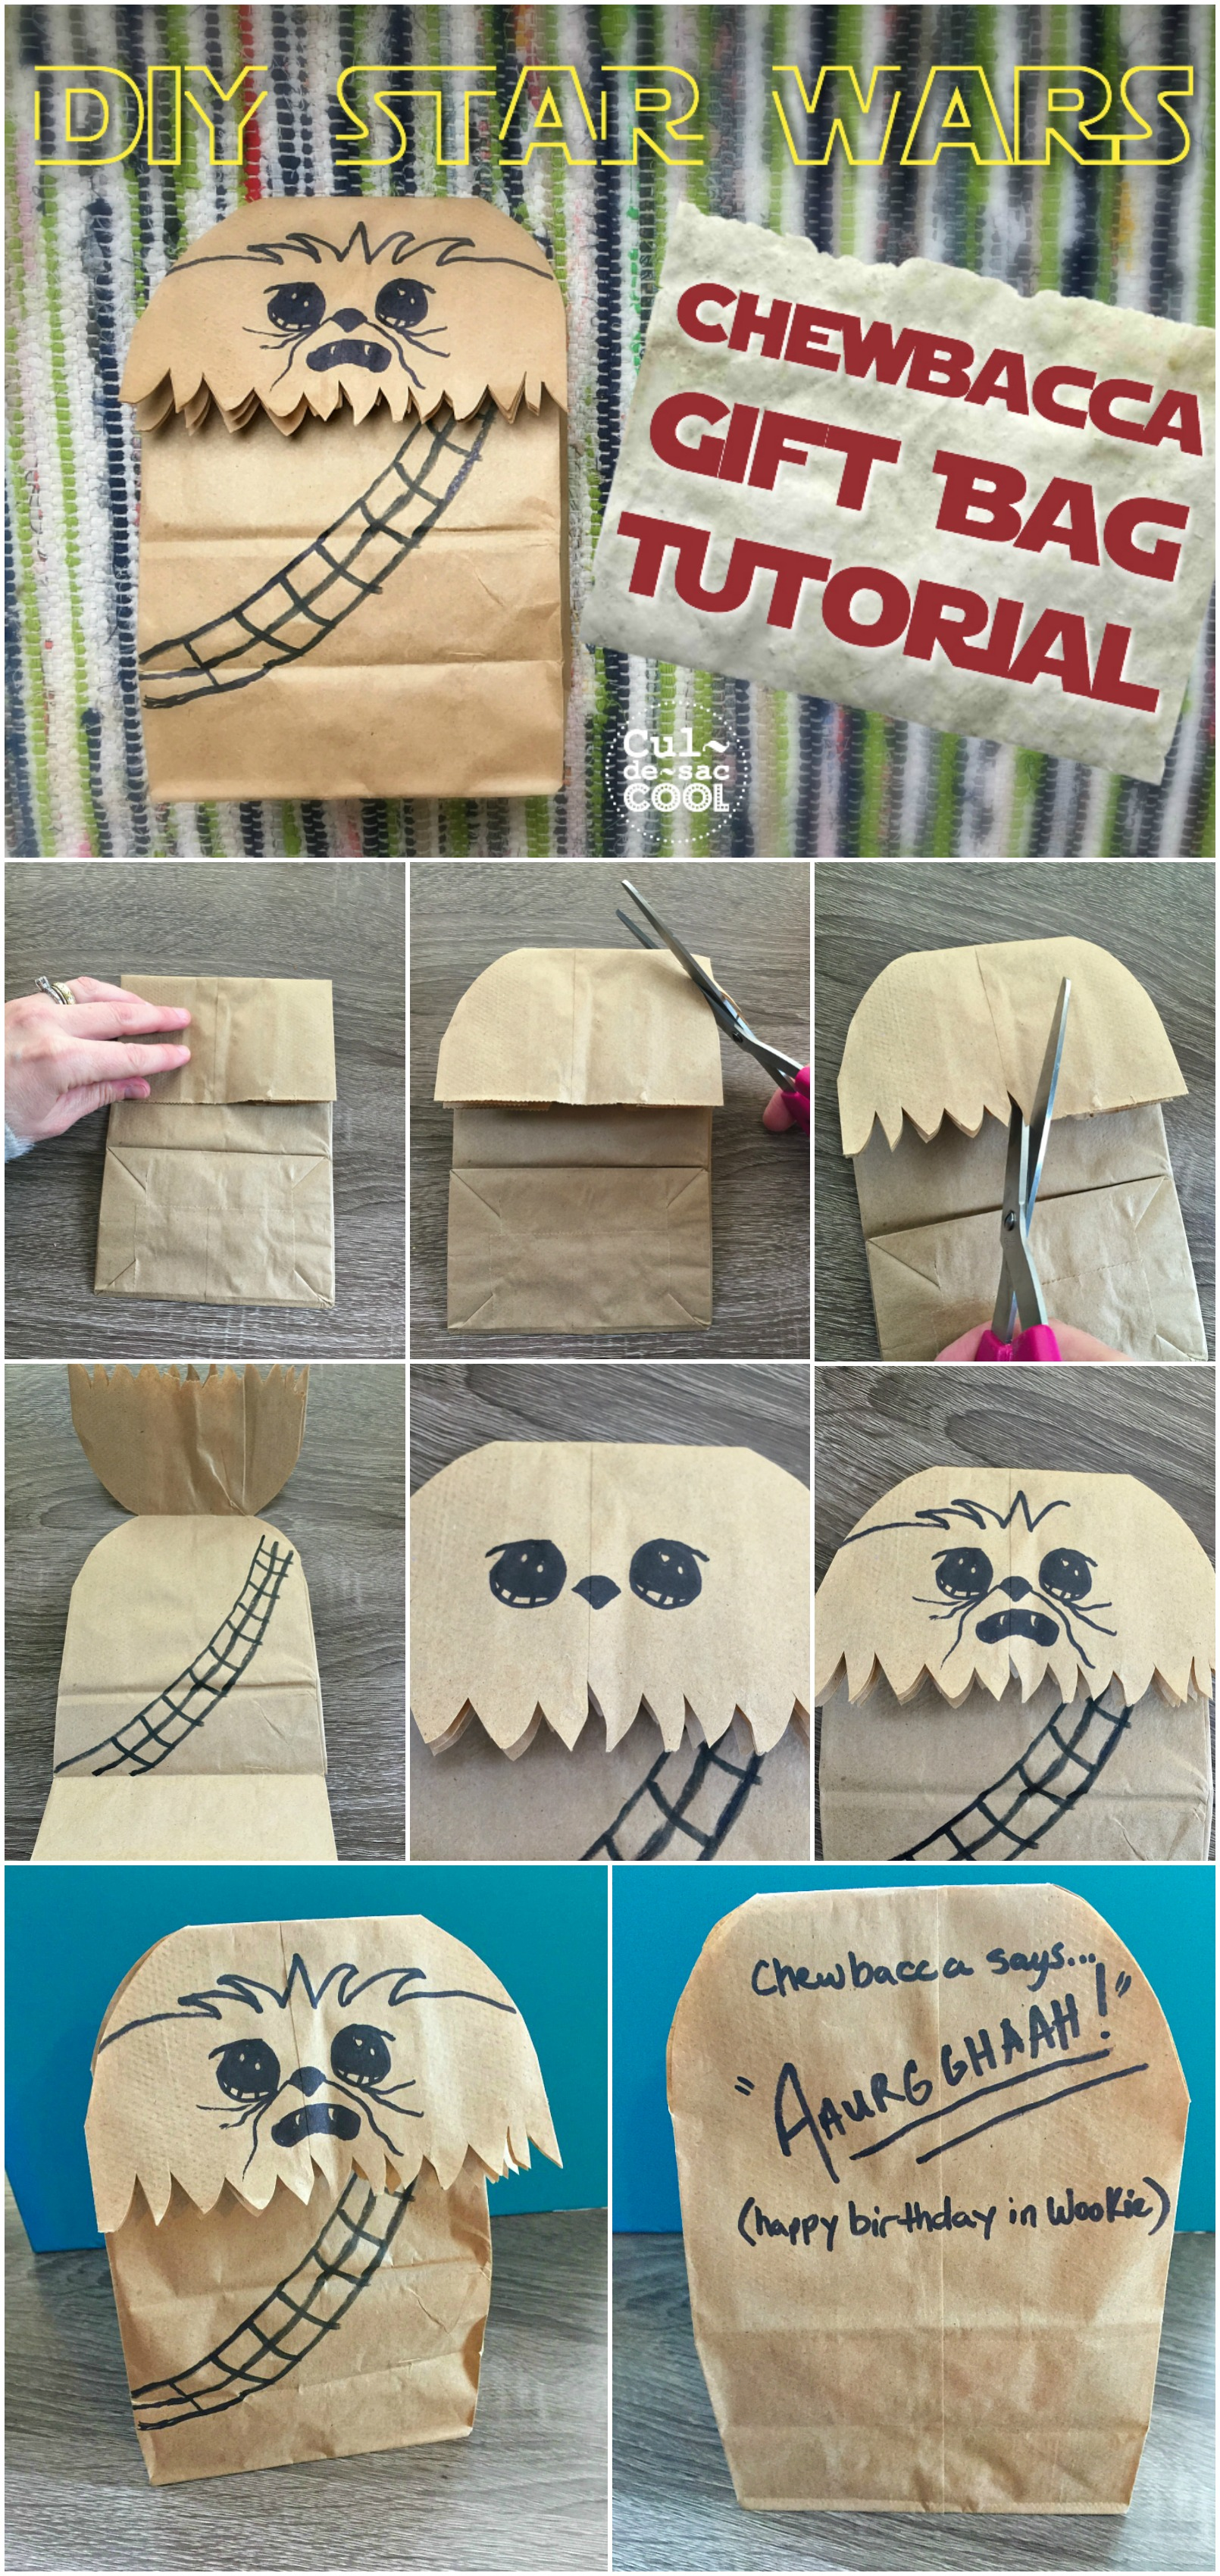 DIY Star Wars Chewbacca Gift Bag Tutorial Collage